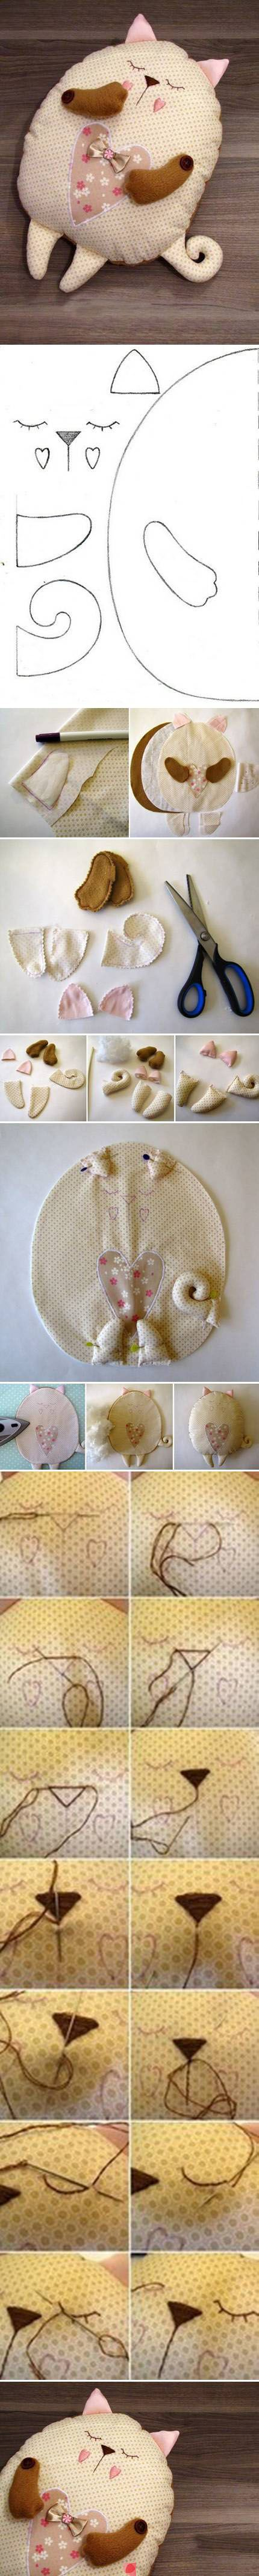 DIY - Tutoriel: ❤️*❤️ Pattern. Doudou chat